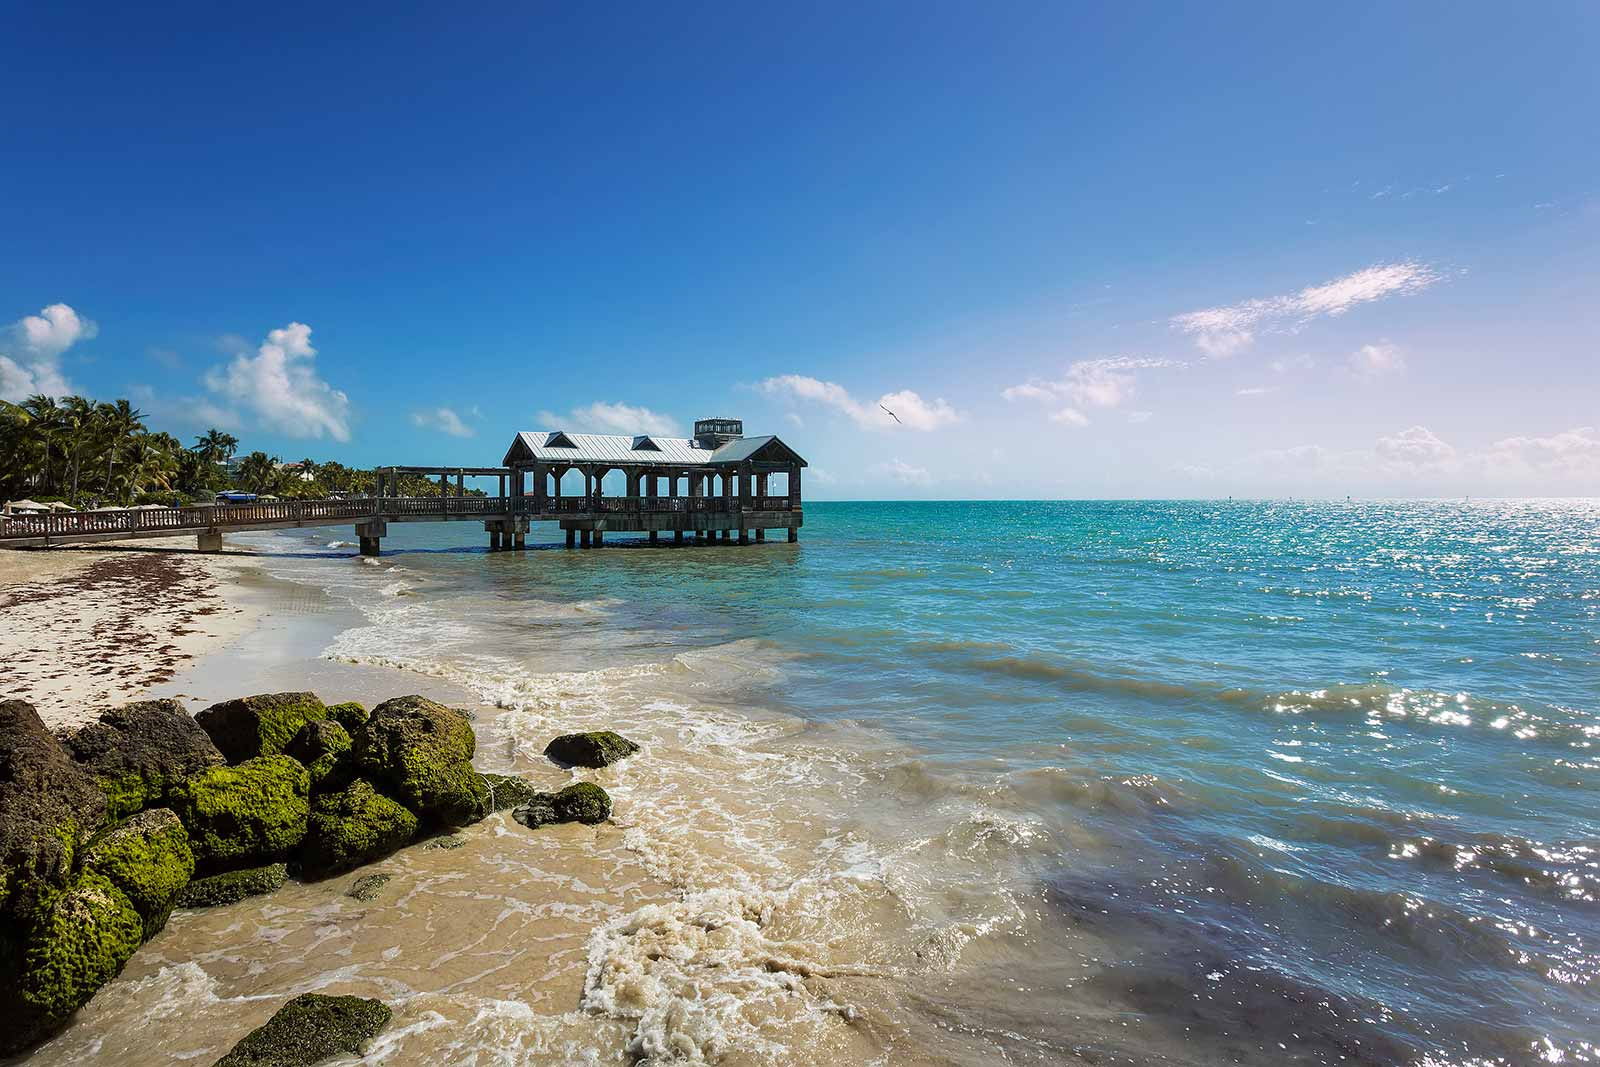 Beautiful beaches are a rare sight in Key West, but you'll come across a couple of nice piers on the contrary.